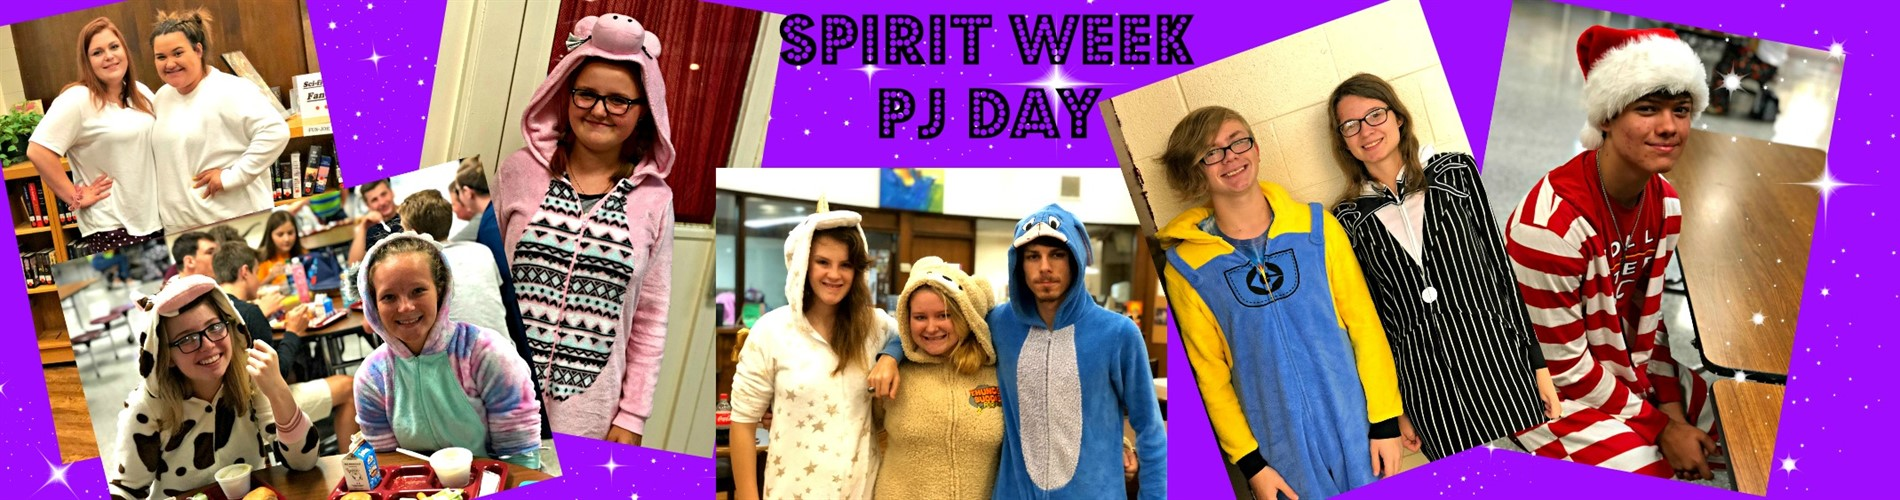 A collage of students dressed up for PJ Day